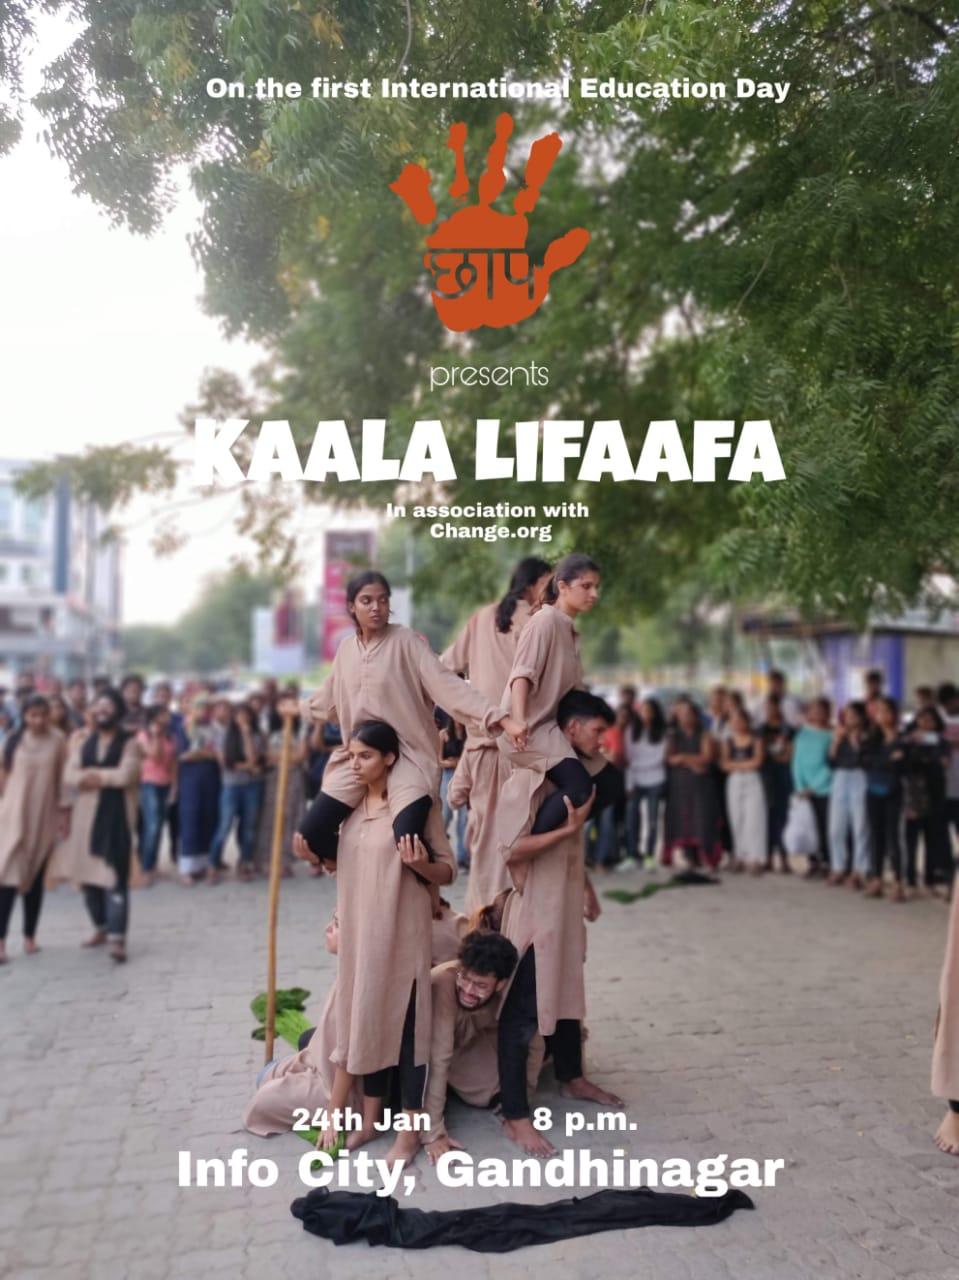 https://creativeyatra.com/wp-content/uploads/2020/01/KAALA-LIFAAFA.jpeg